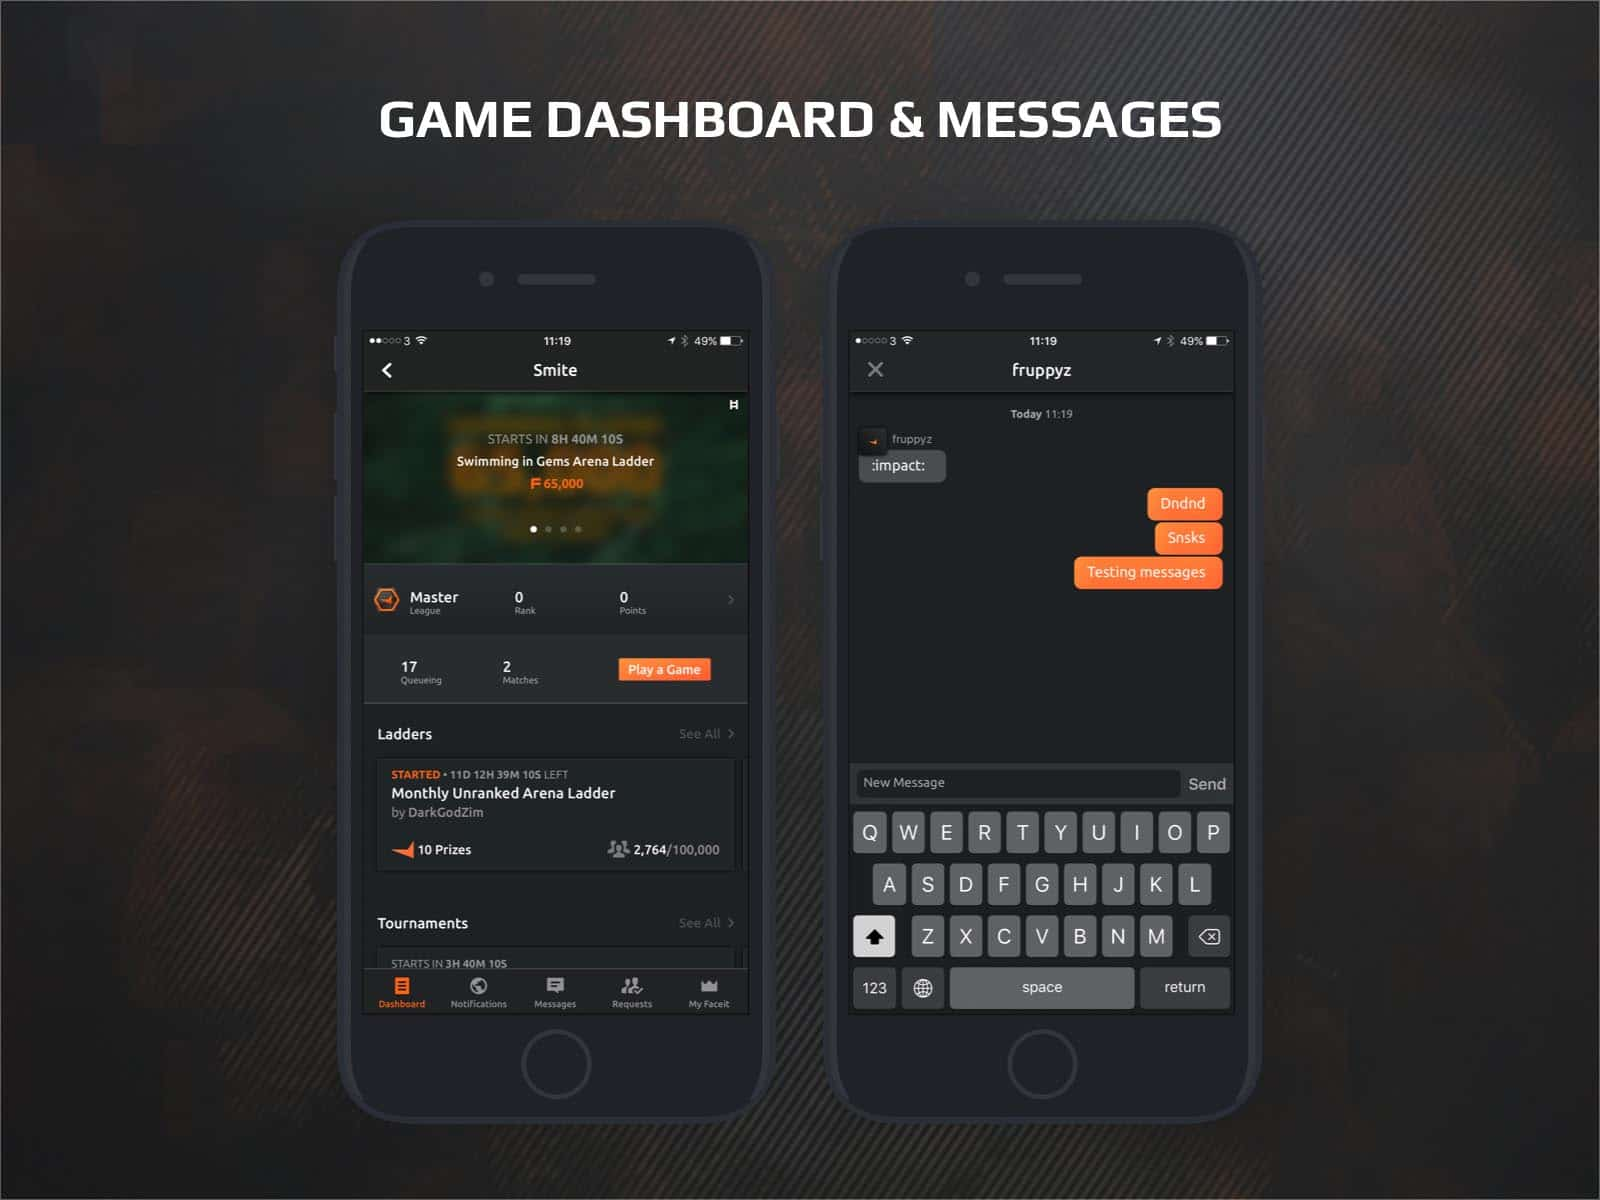 faceit app game dashboard and messages